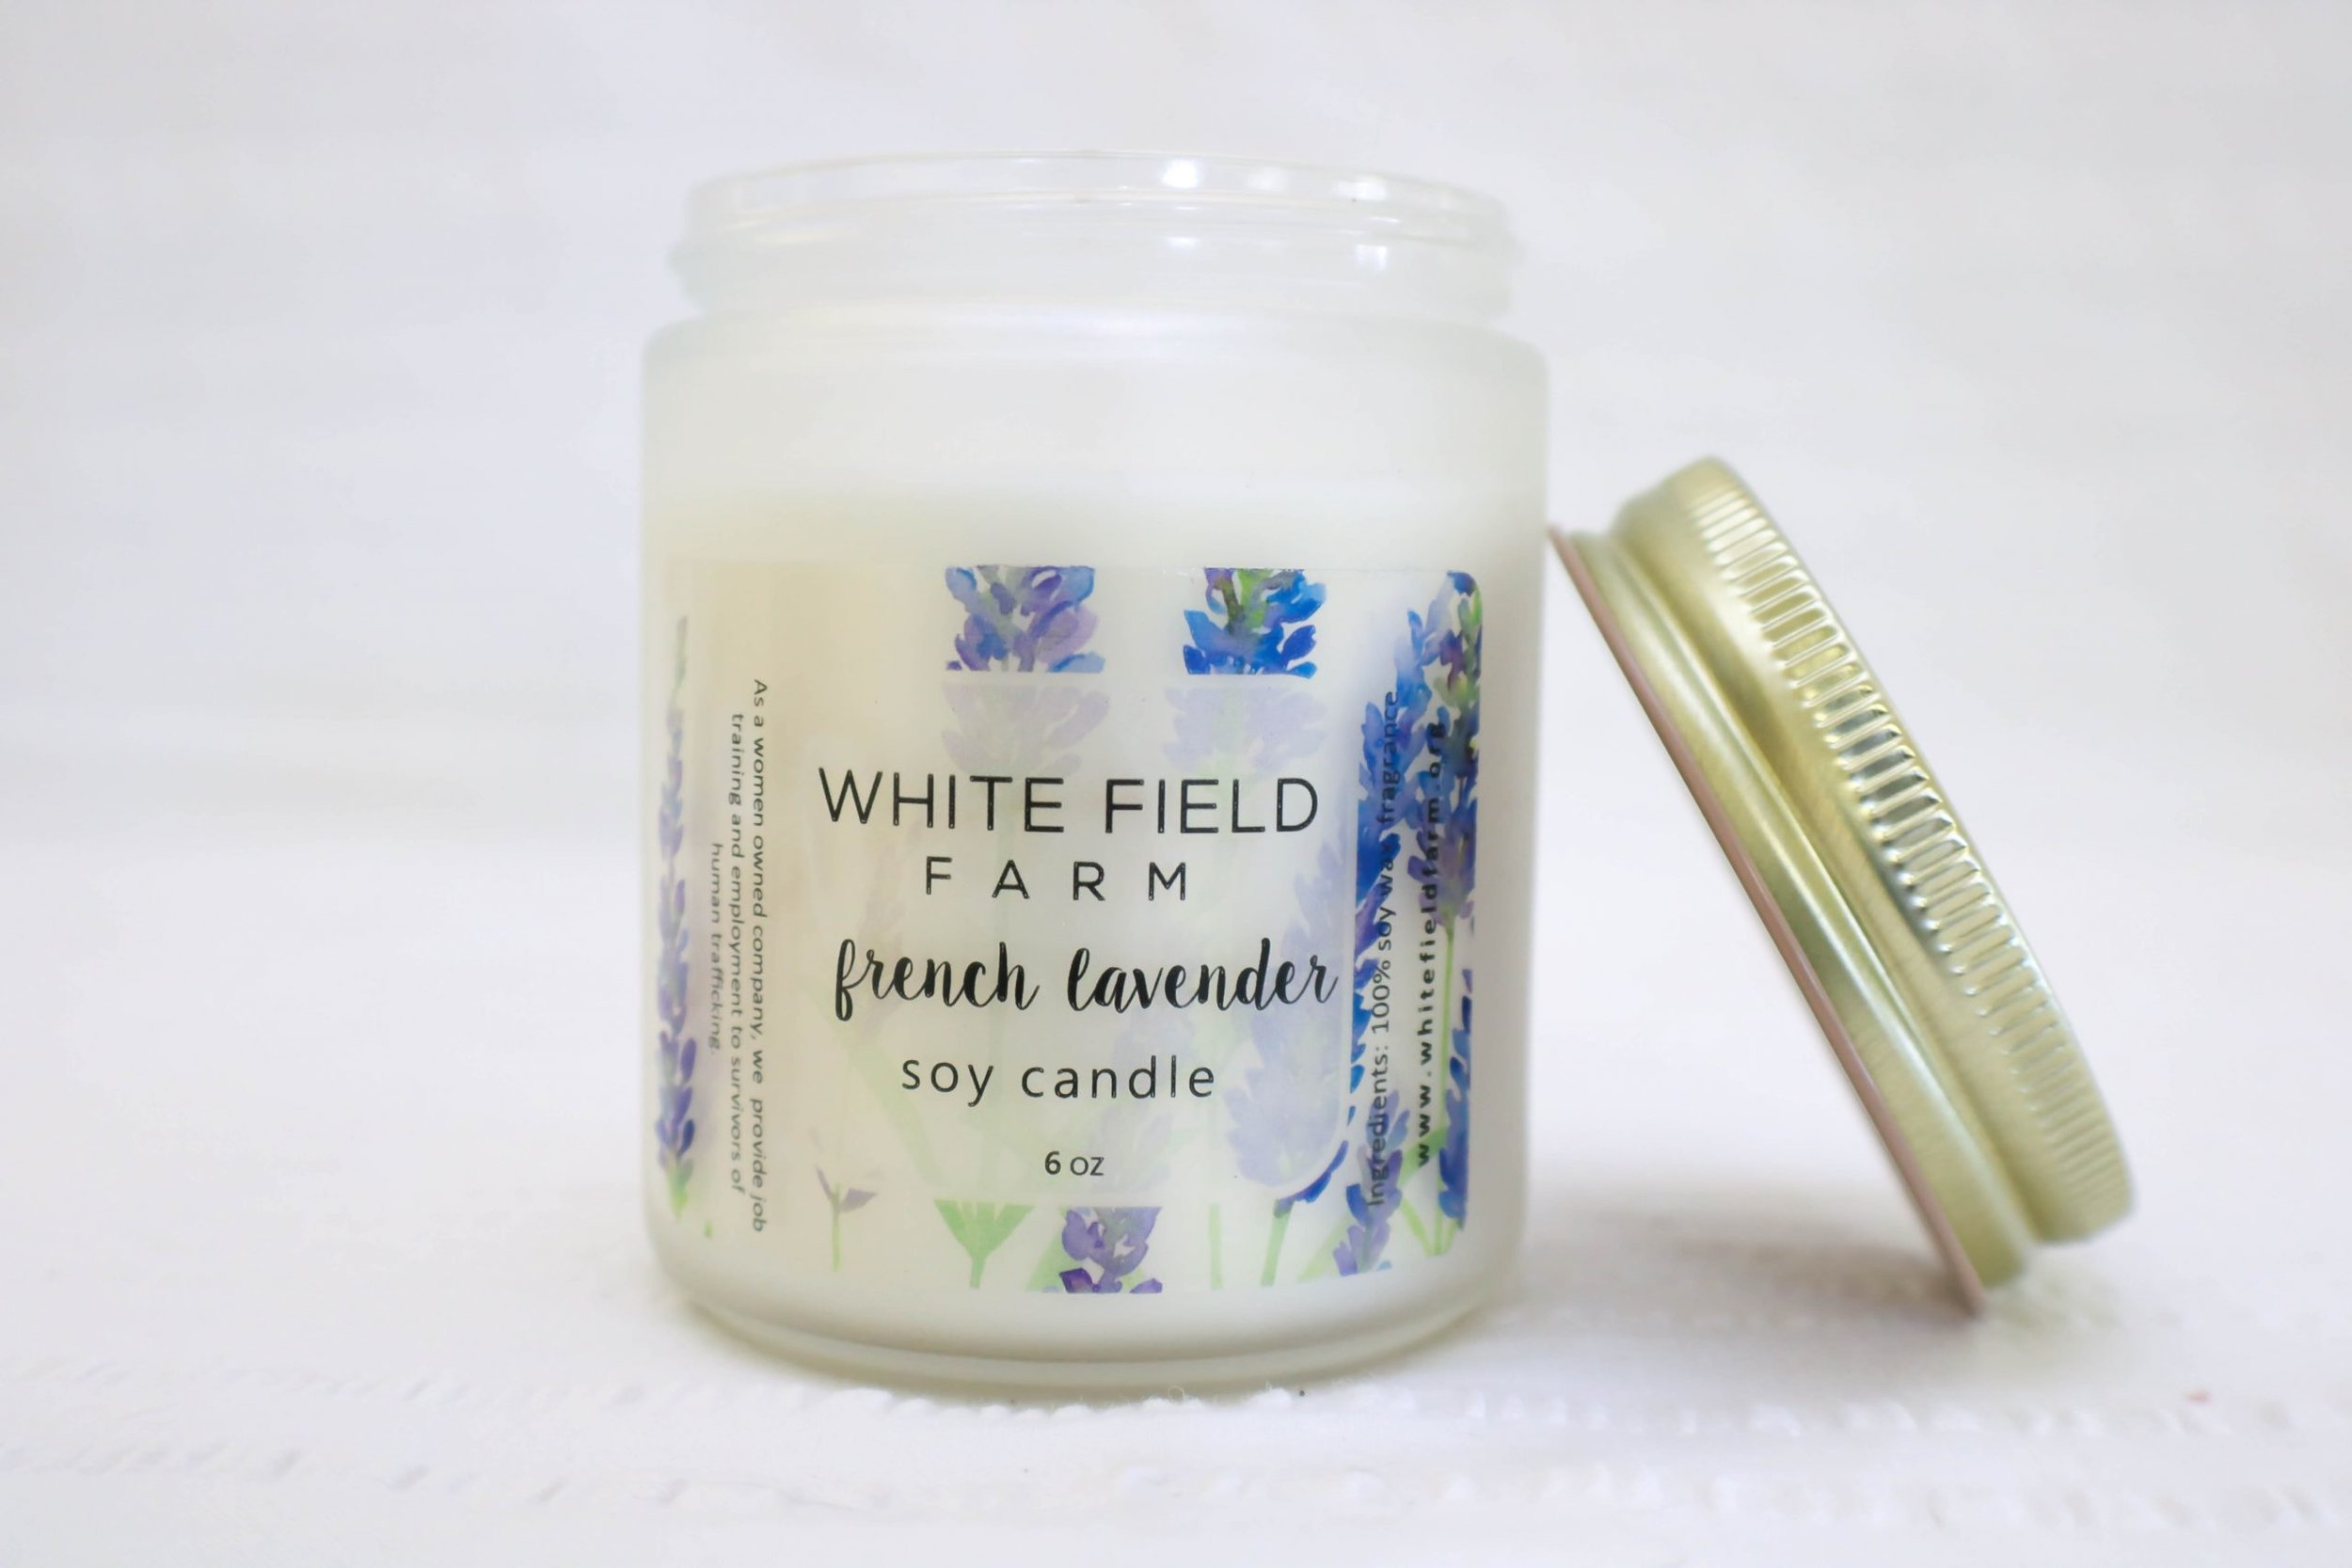 White Field Farm  is run by a little community of Orthodox Greek nuns in Montana. Proceeds from this non-profit beauty and home care company support female survivors of abuse and human trafficking. I'm in love with their soy candles, especially french lavender for spring.